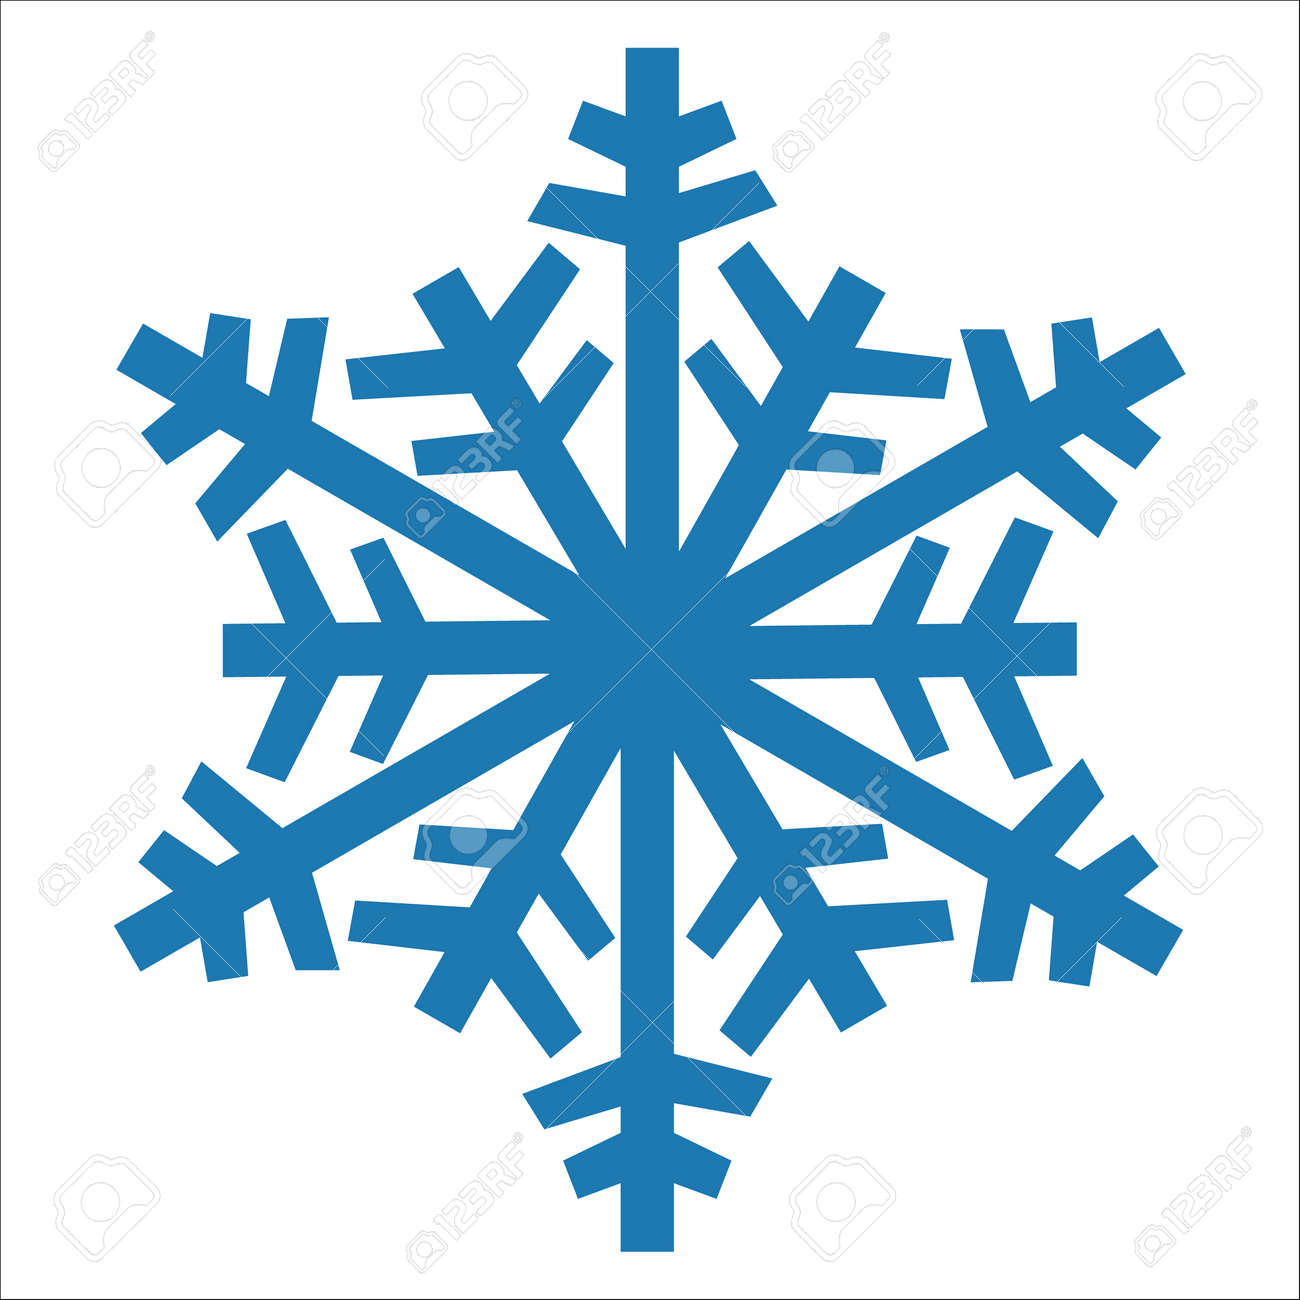 snowflake vector icon blue color. winter white christmas snow.. royalty  free cliparts, vectors, and stock illustration. image 93344935.  123rf